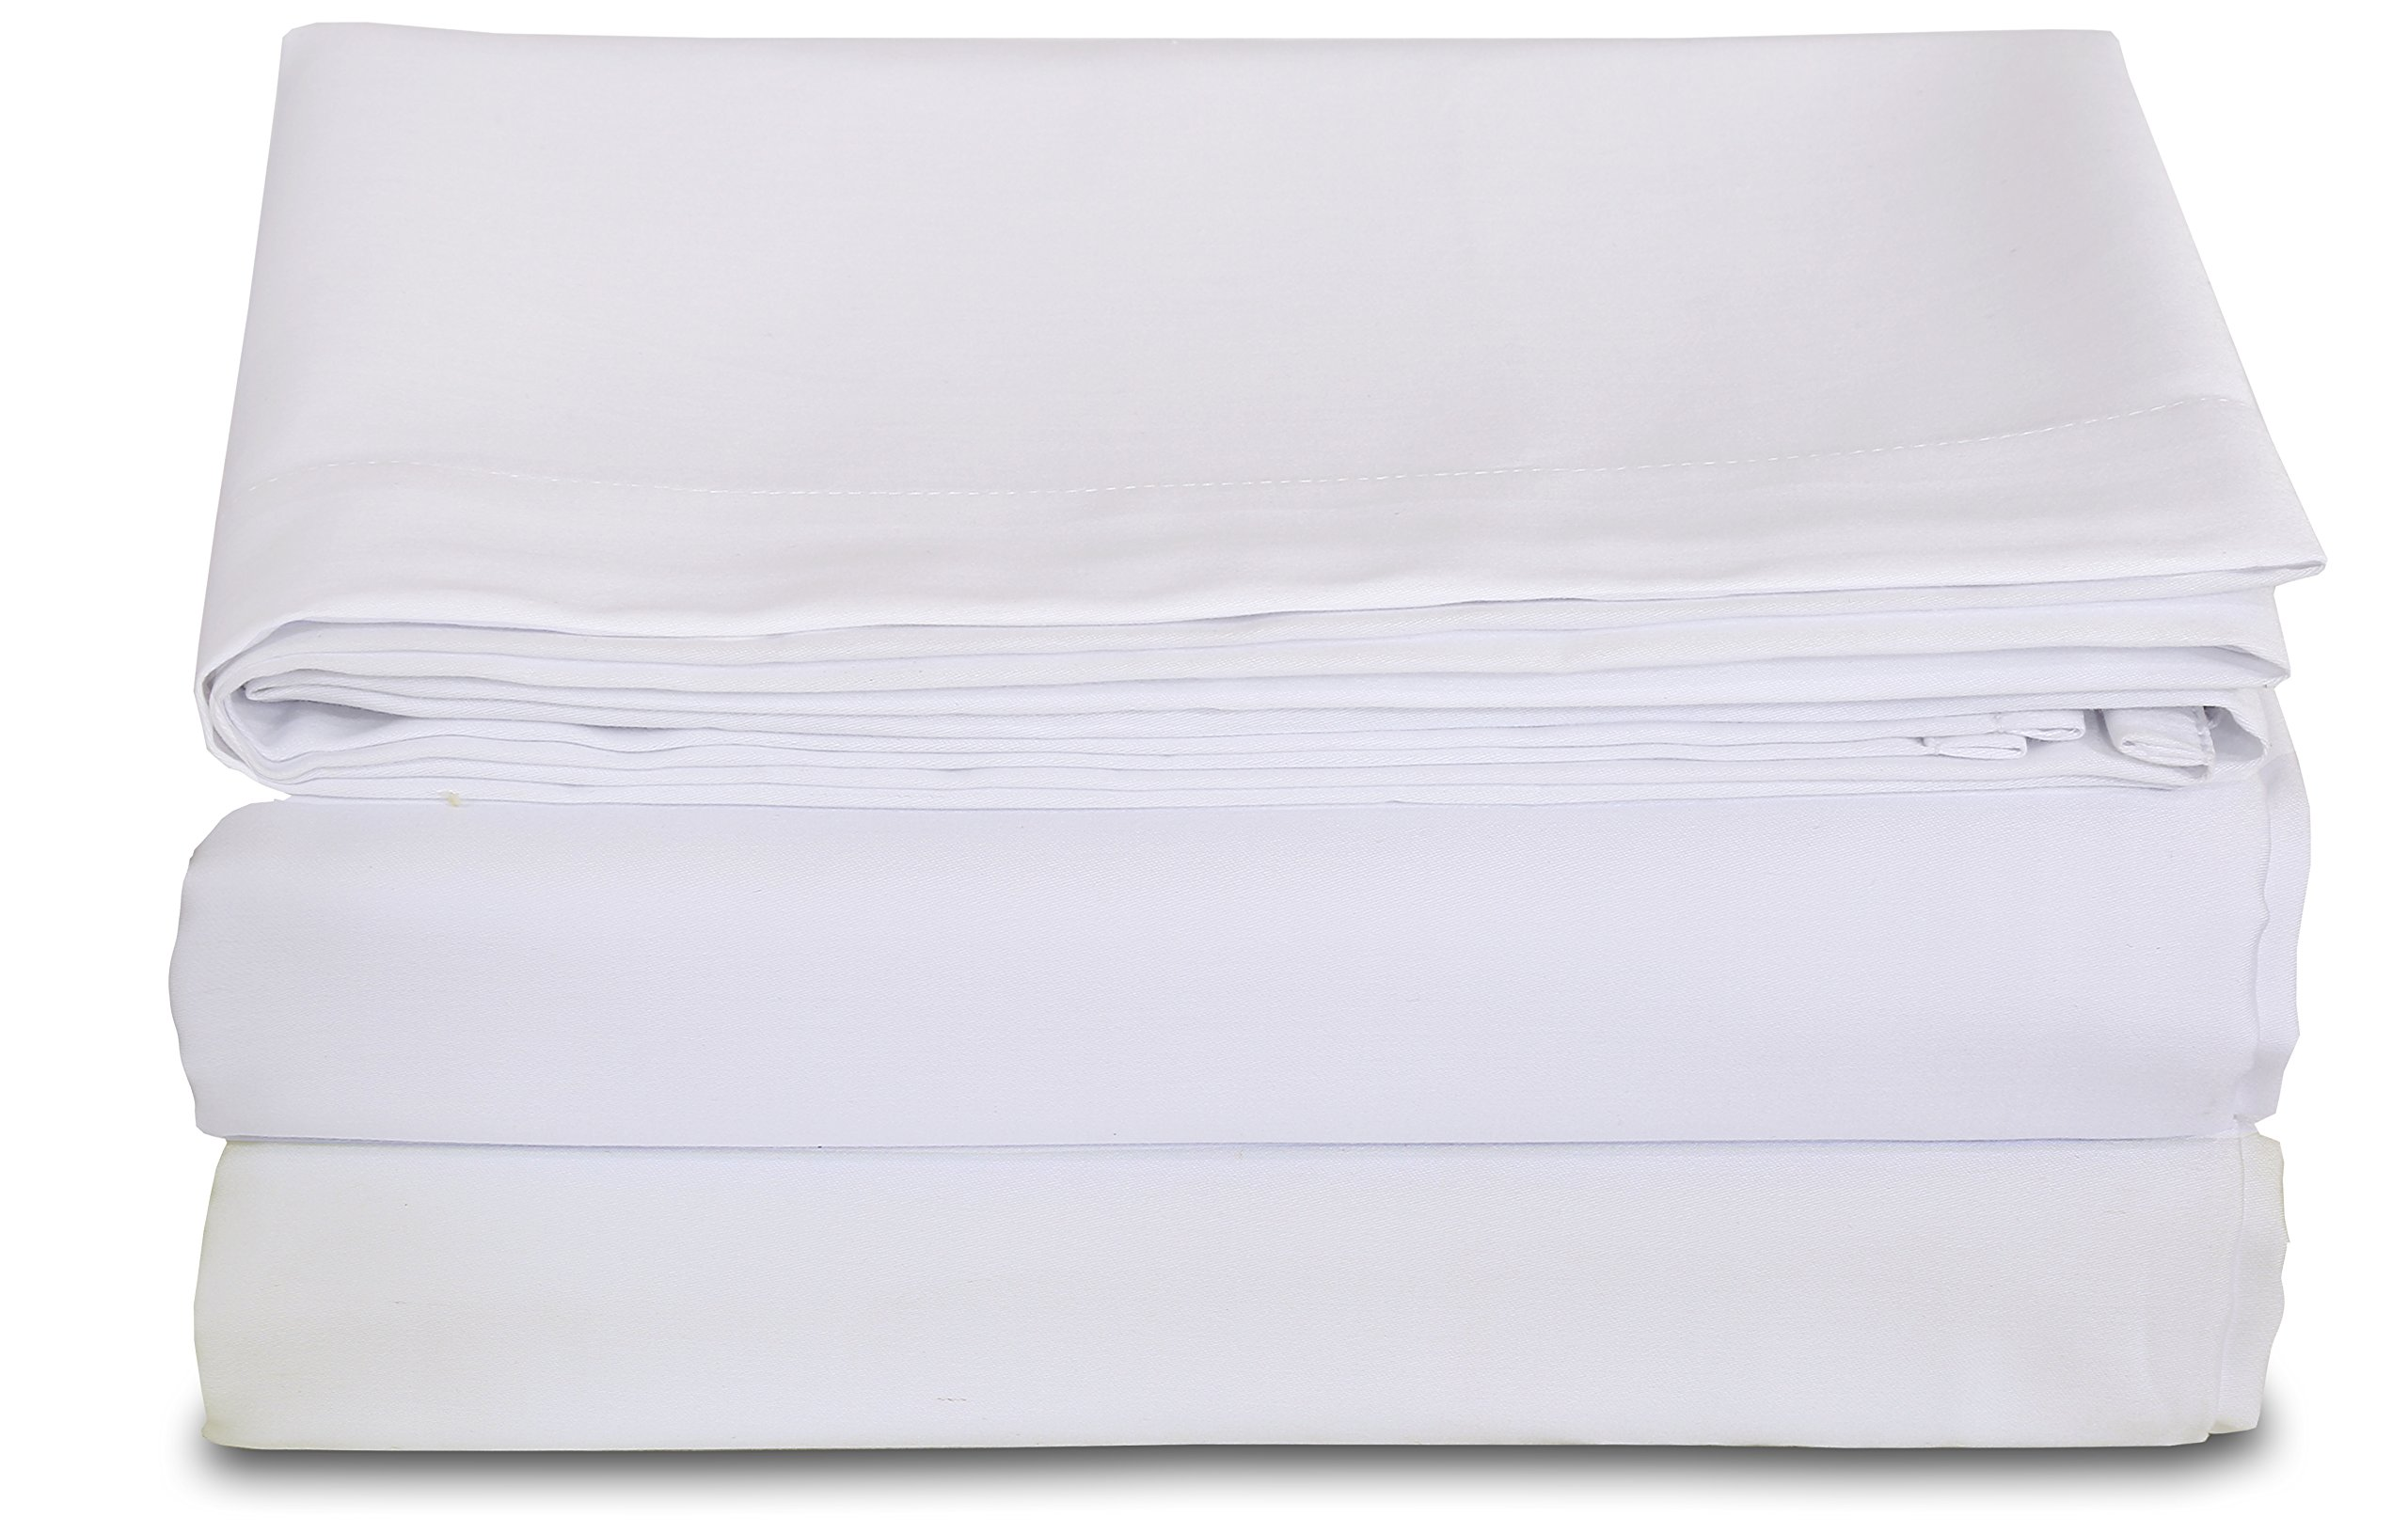 Excellent Deals Flat Sheet (Full, White) - 2 Inches Self Hem - brushed microfiber - super soft breathable and comfortable, Easy Iron - wrinkle free, fade and stain resistant bed sheet